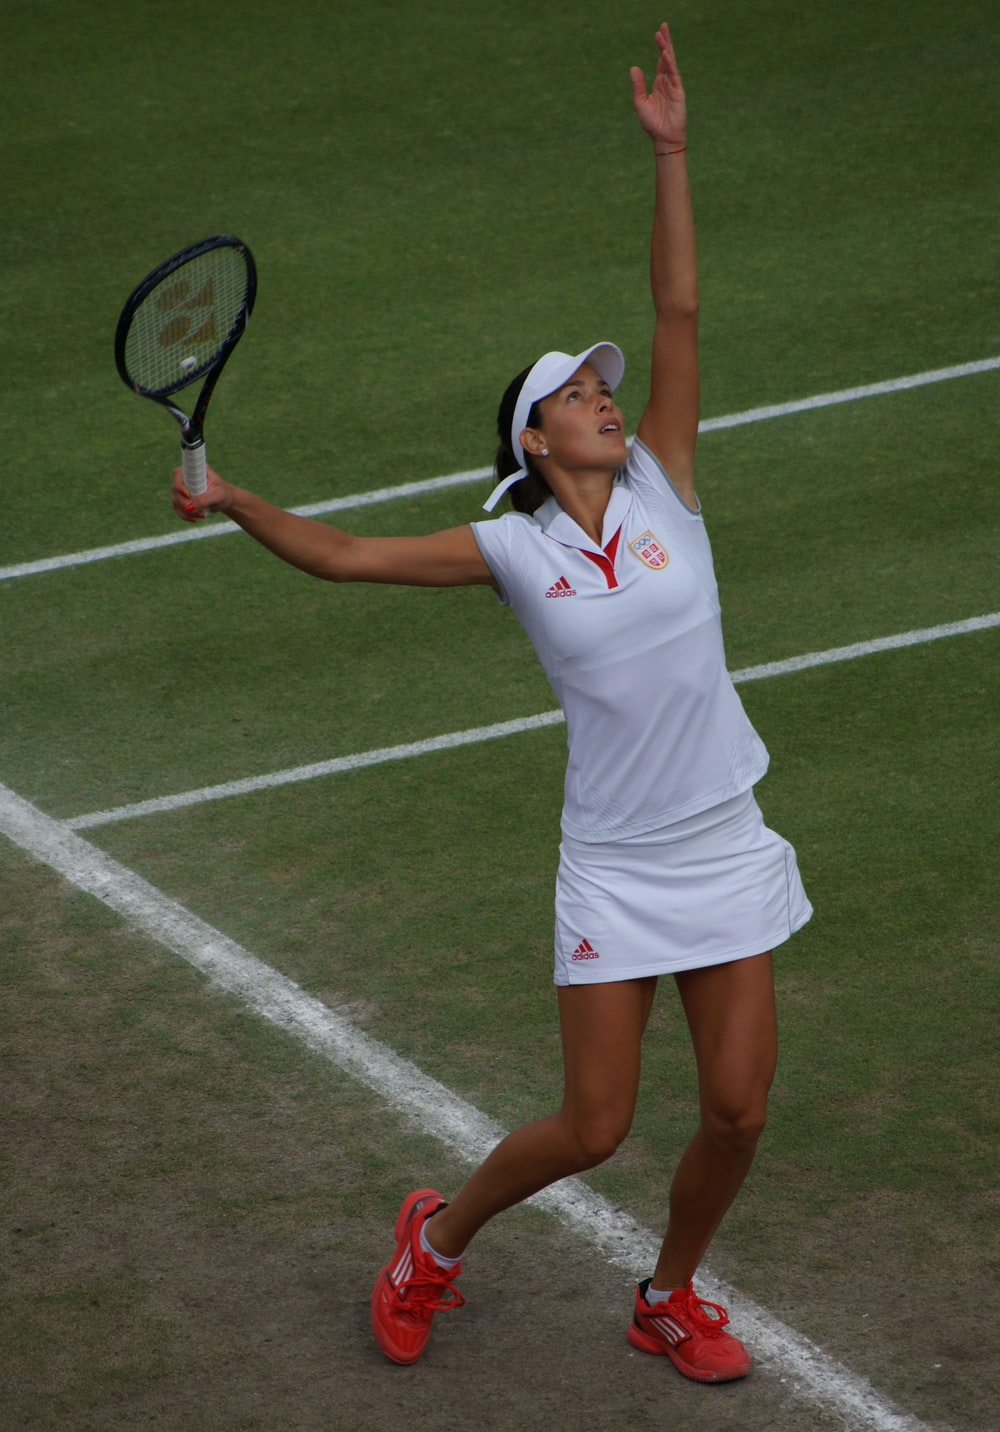 woman playing tennis about to hit tennis ball